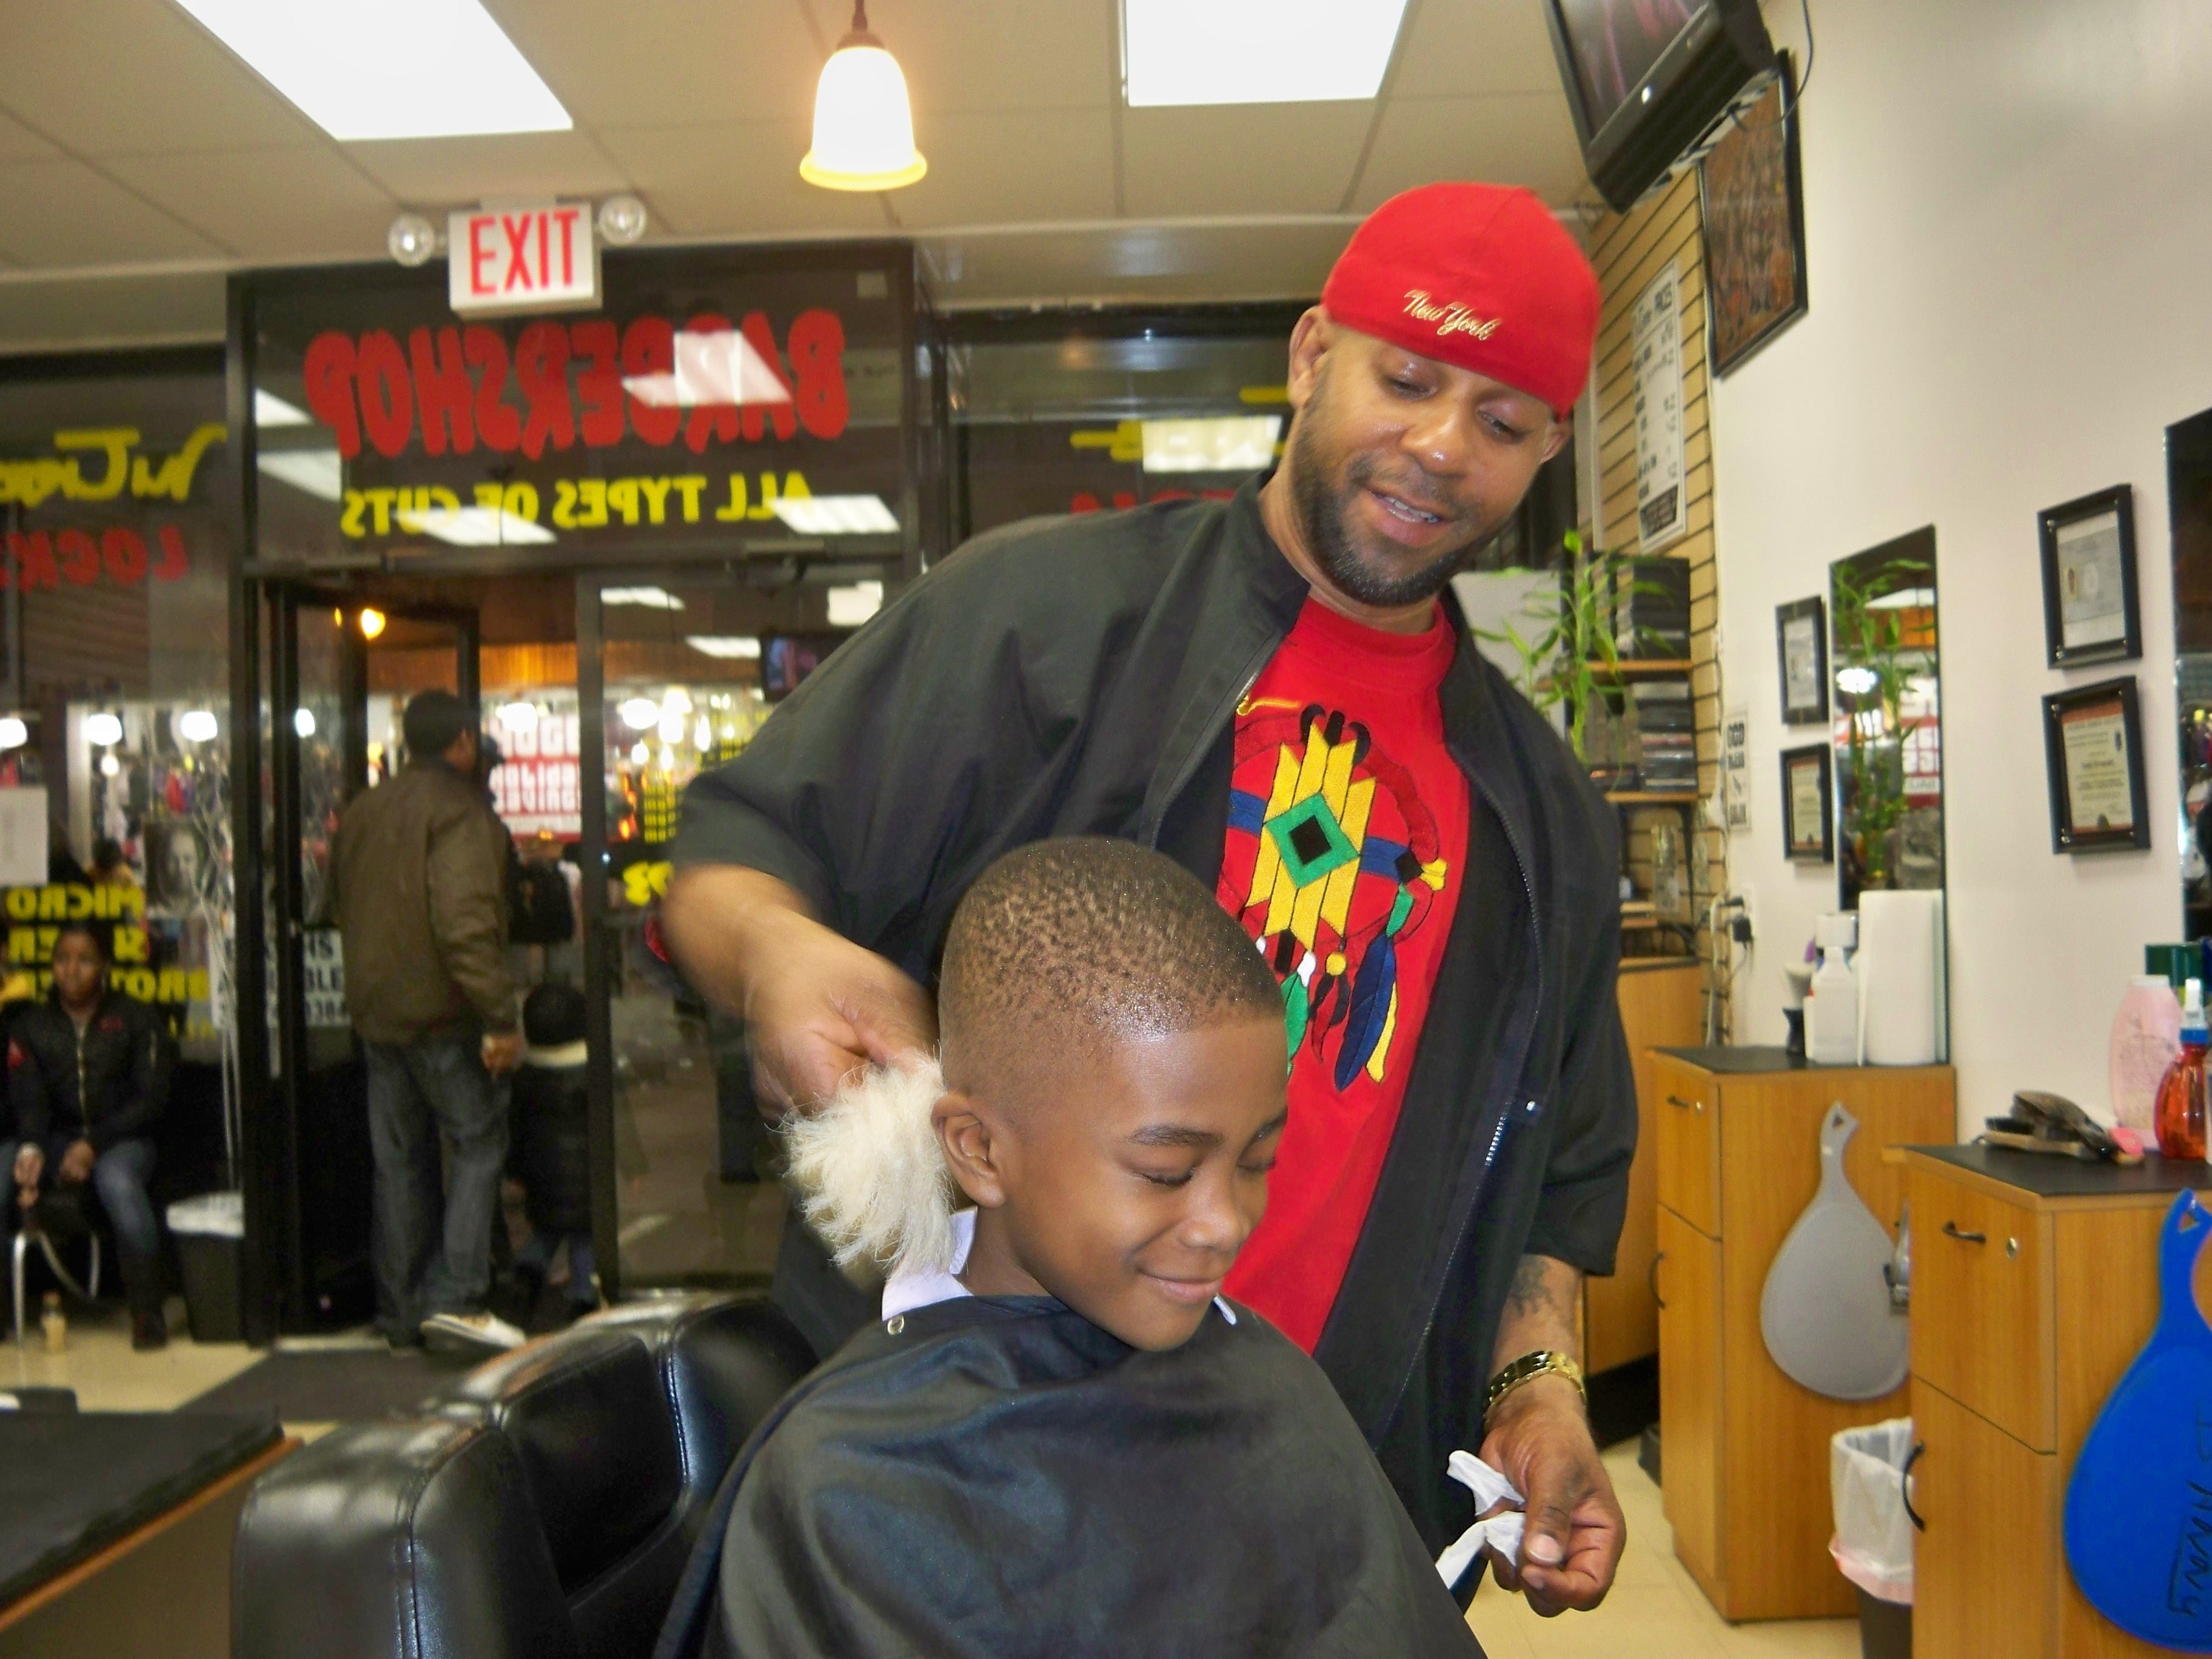 People Getting Haircuts is Getting a Haircut From